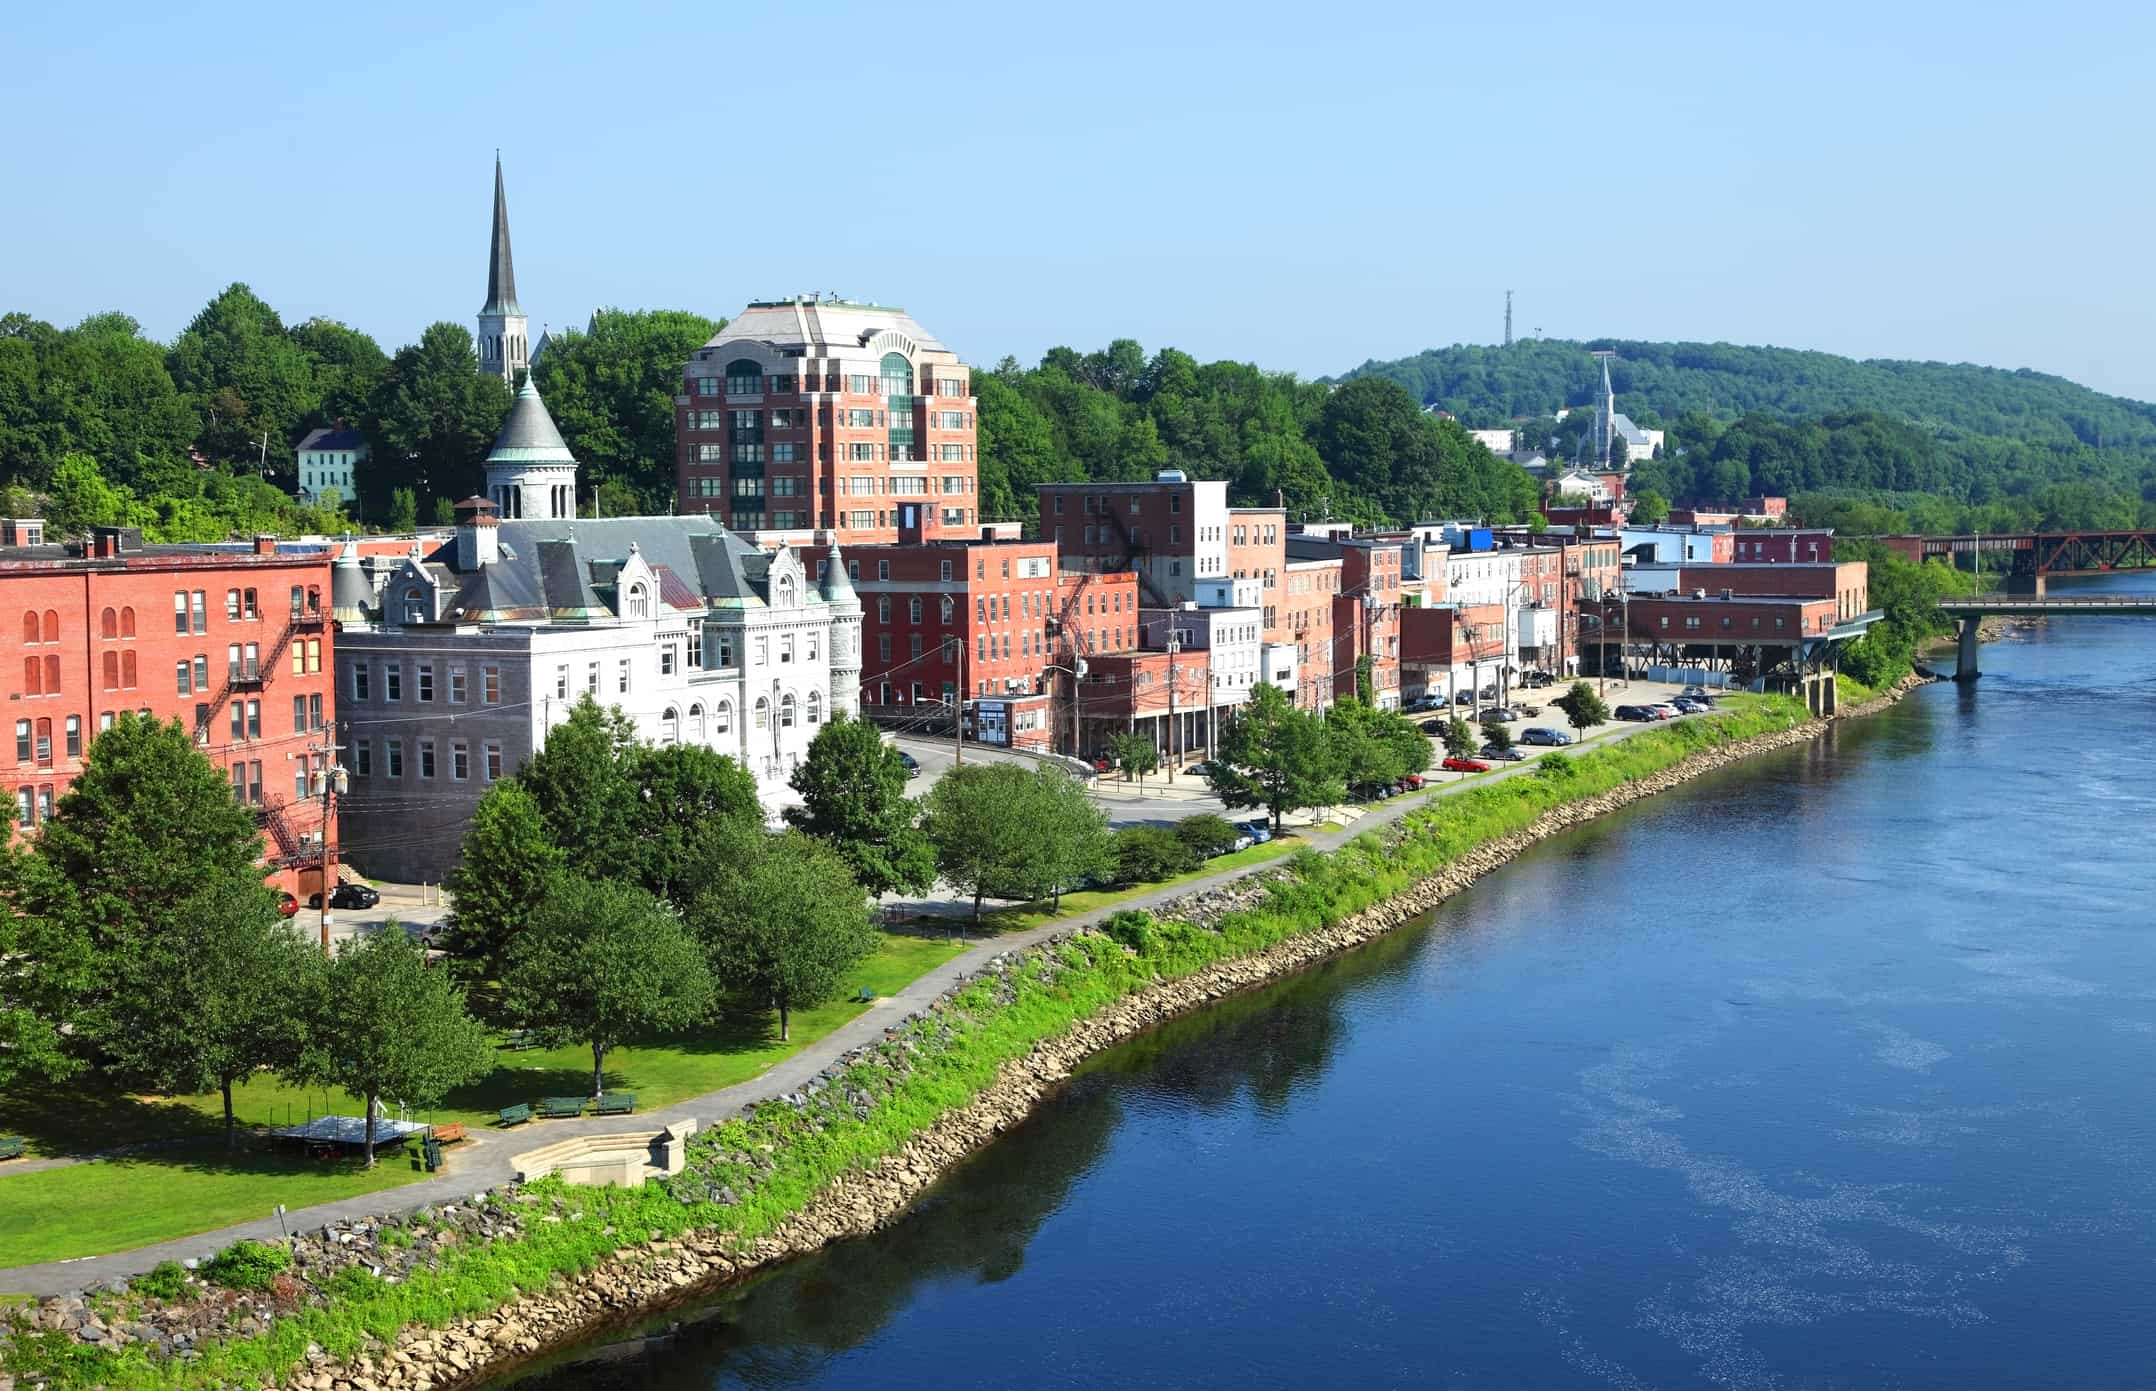 Augusta downtown skyline along the banks of the Kennebec River at night. Augusta is the capital of the U.S. state of Maine located in the Kennebec Valley. The Augusta area is known for its historic buildings, beautiful forested hills, cross-country skiing, and scenic lakes and streams